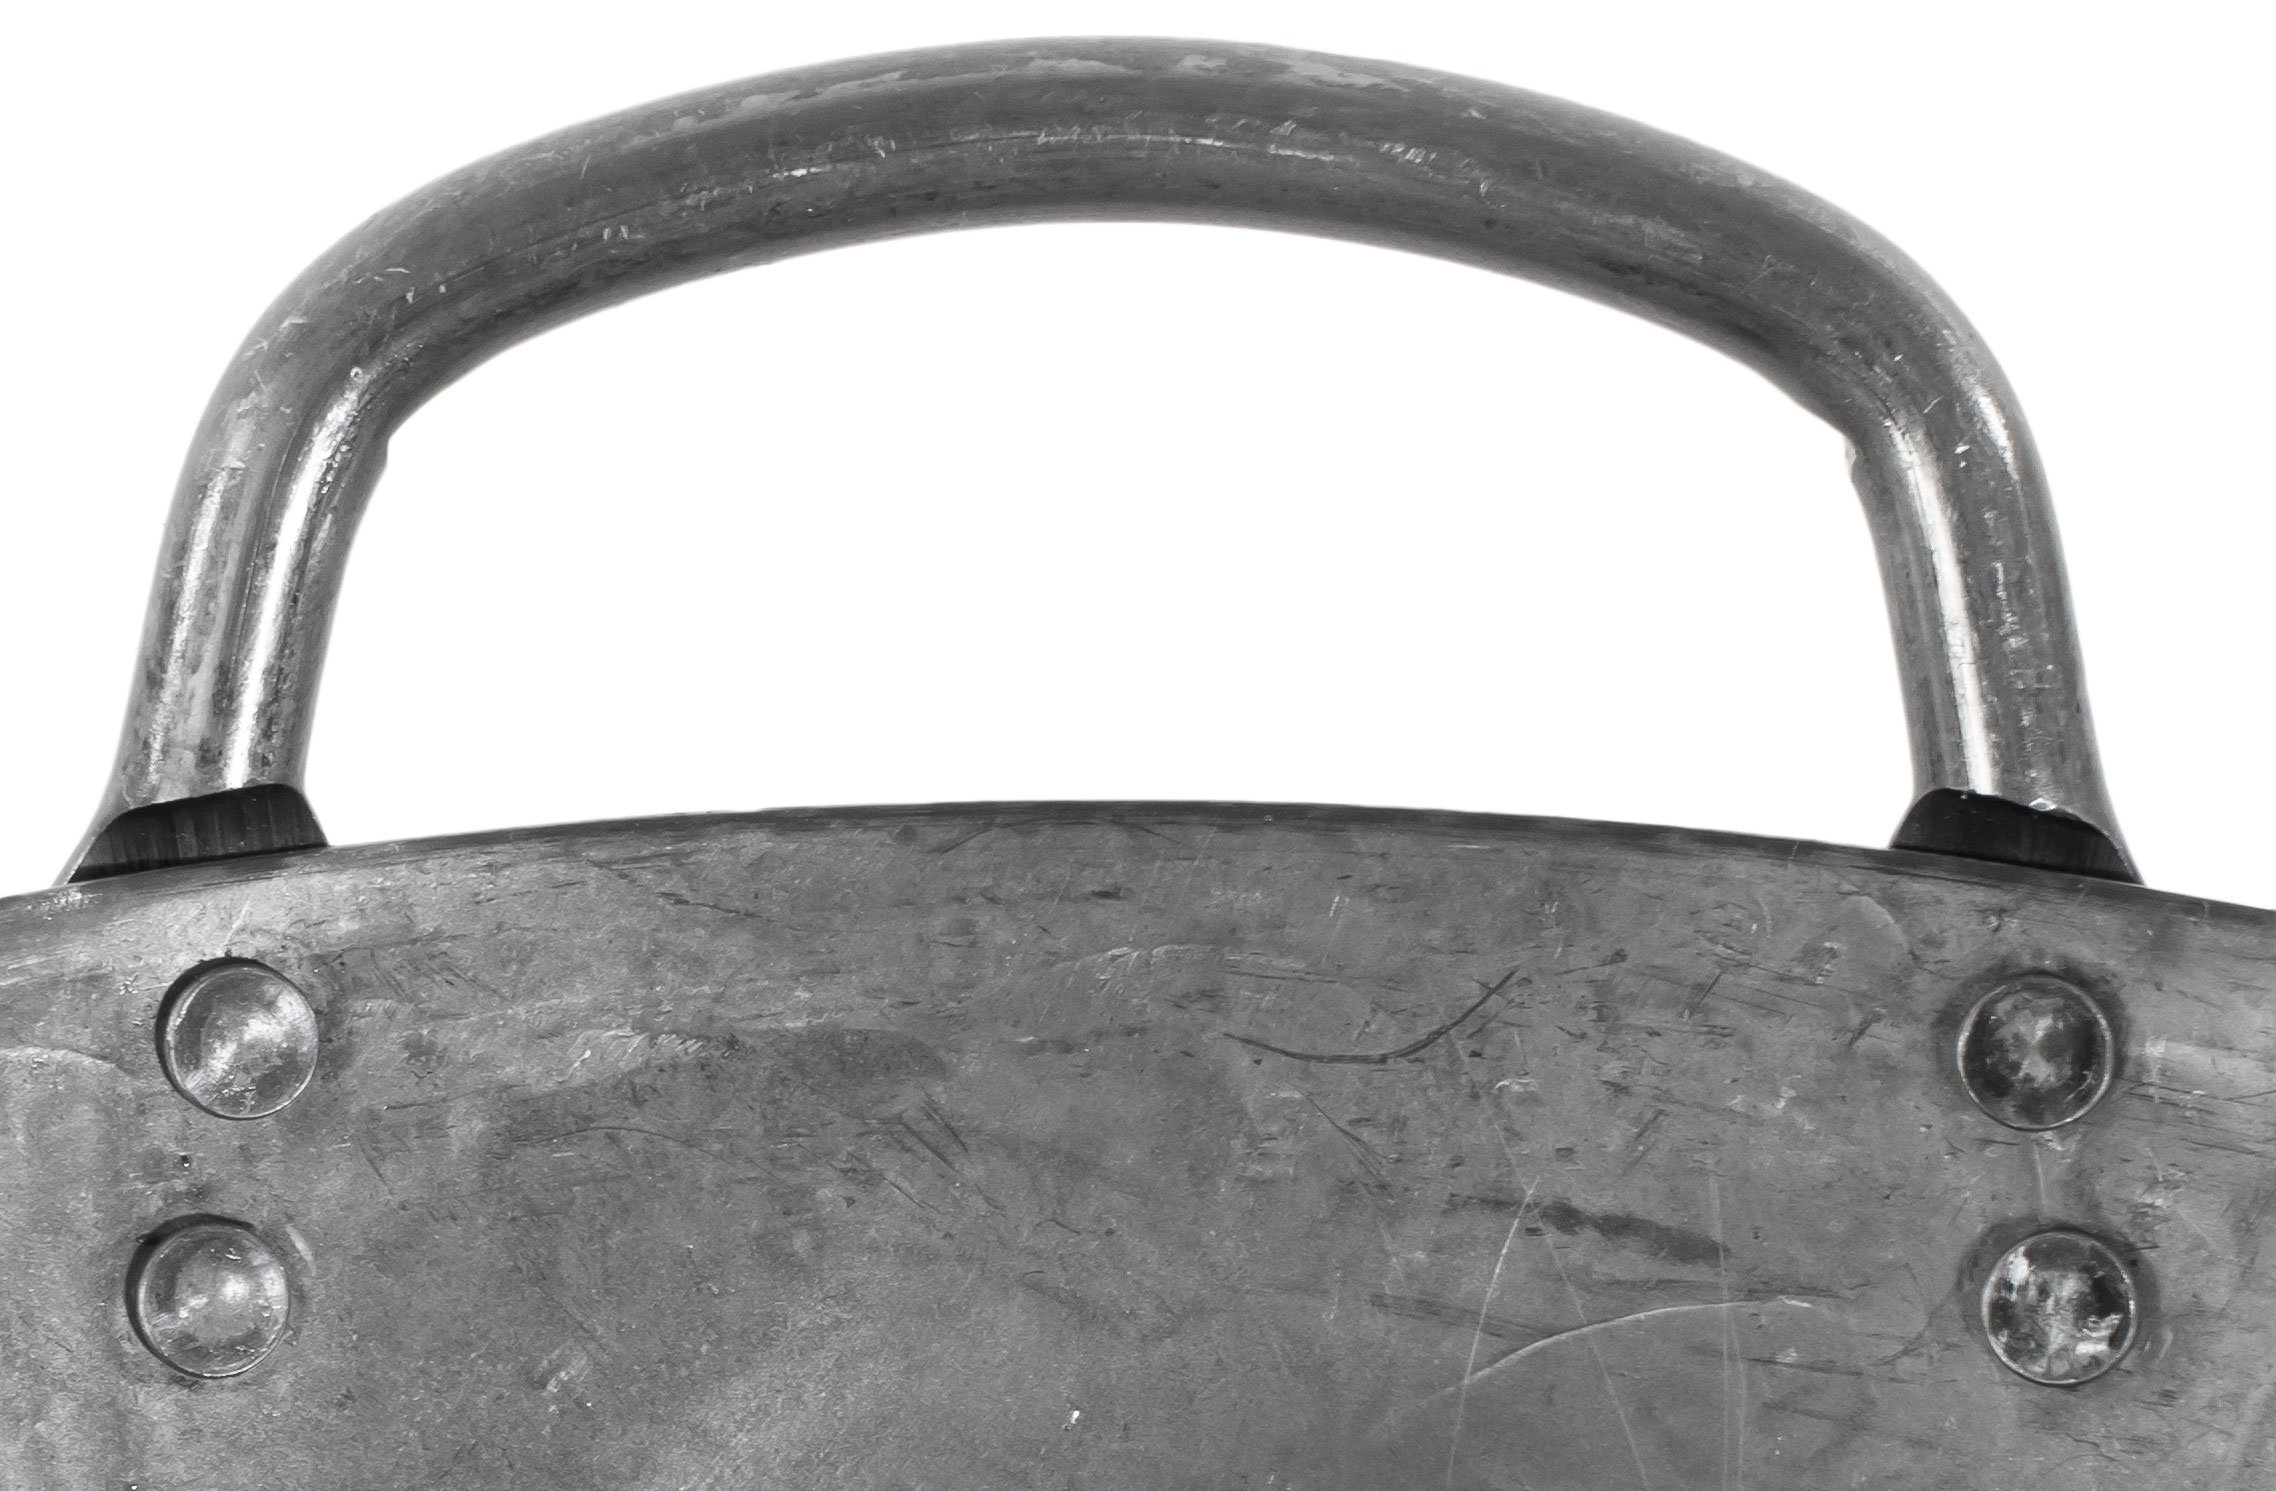 Chef's Supreme - 14'' Hand-Hammered Cantonese Wok by Chef's Supreme (Image #4)